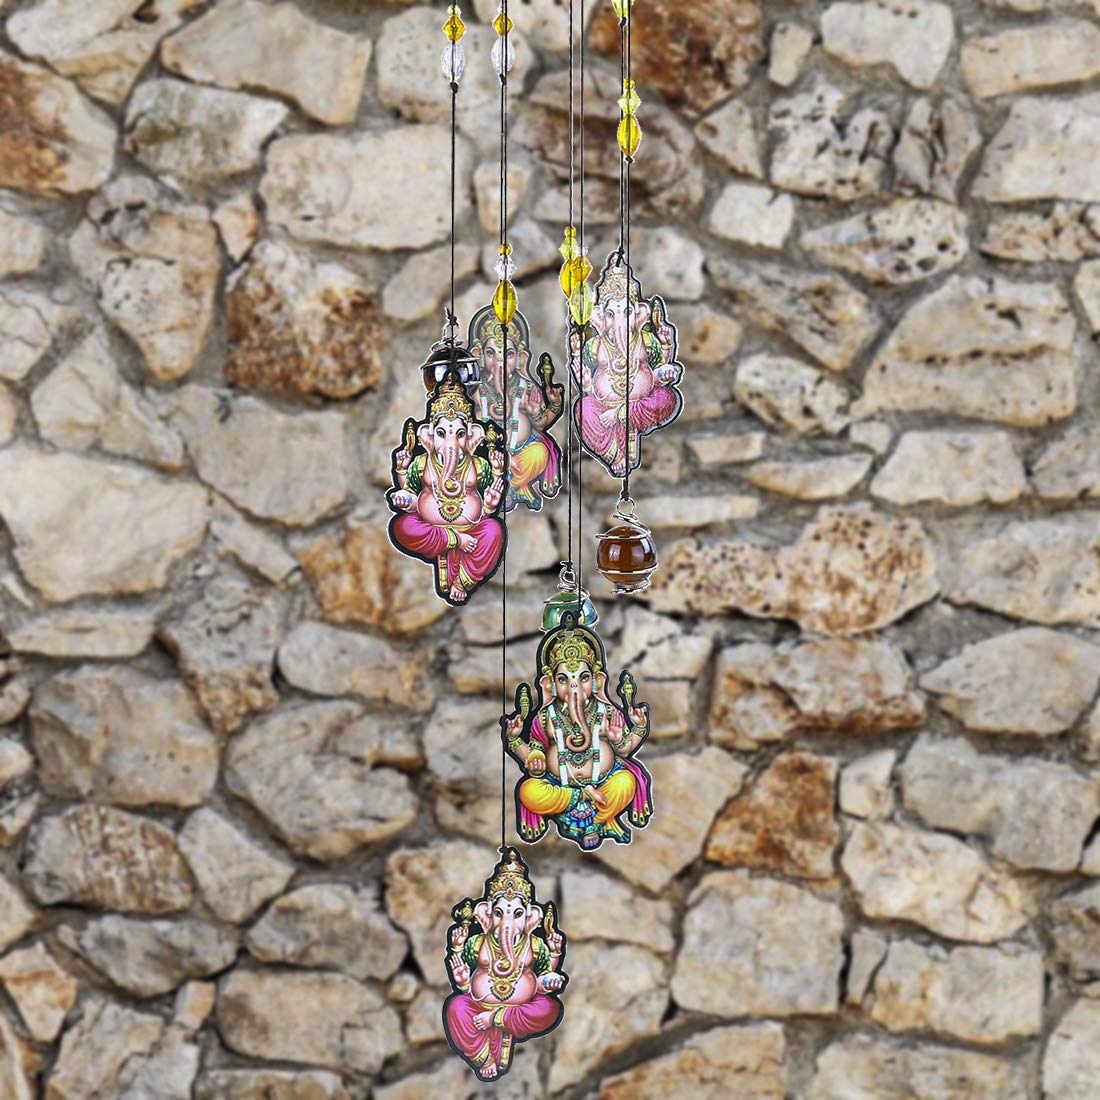 YUFENG ind Chimes Outdoor Decor,18 Metal Memorial Windchimes Wind Chimes Gift for Garden Home Yard Hanging